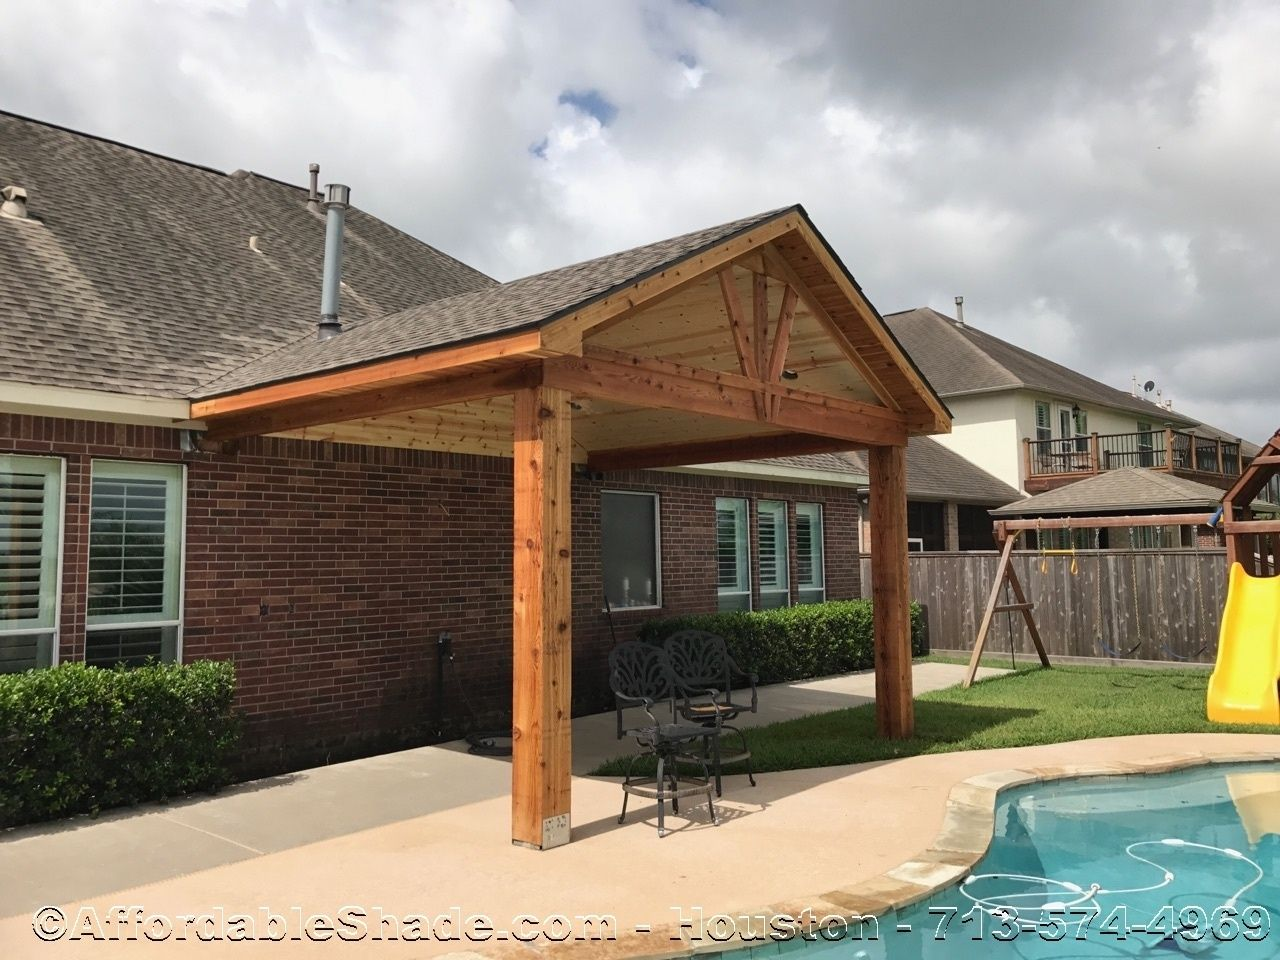 Awesome Patio Cover Ideas BW15zu | Patio, Inexpensive ... on Patio Cover Ideas Cheap id=47541